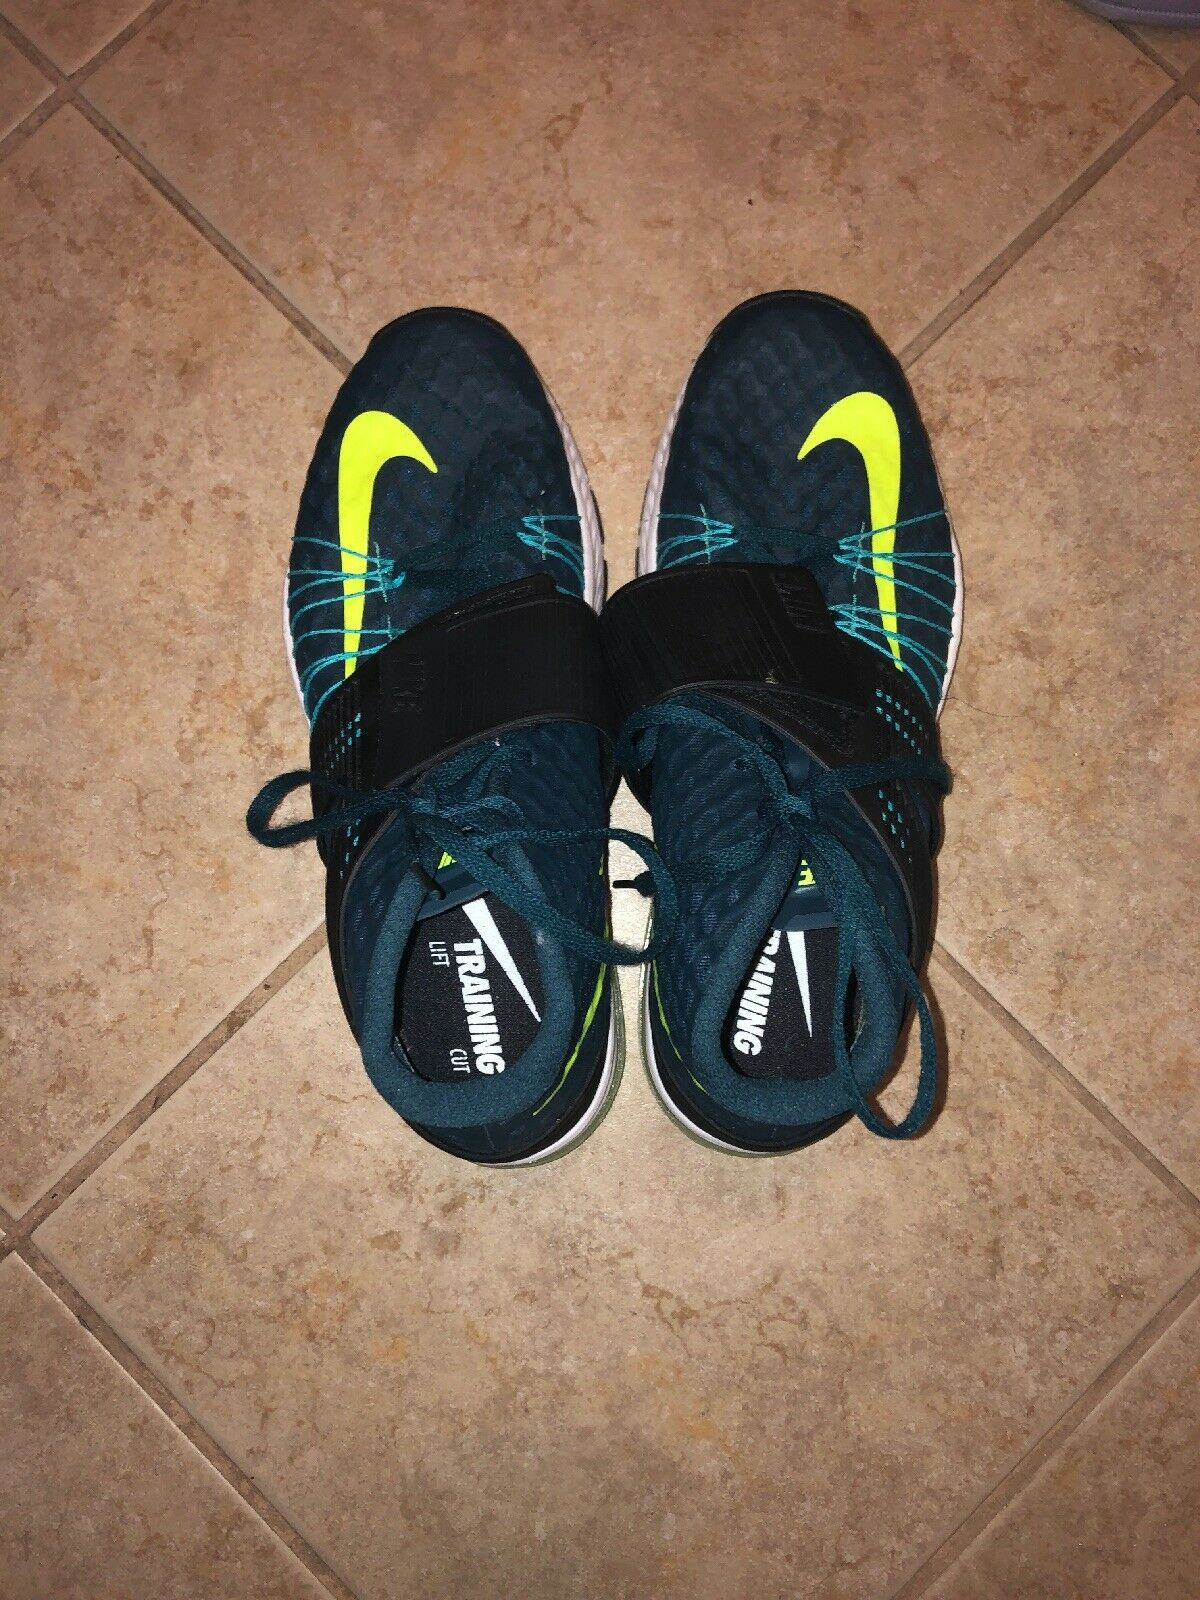 Nike Tornada Zoom Training Size 10 Midnight Turquoise